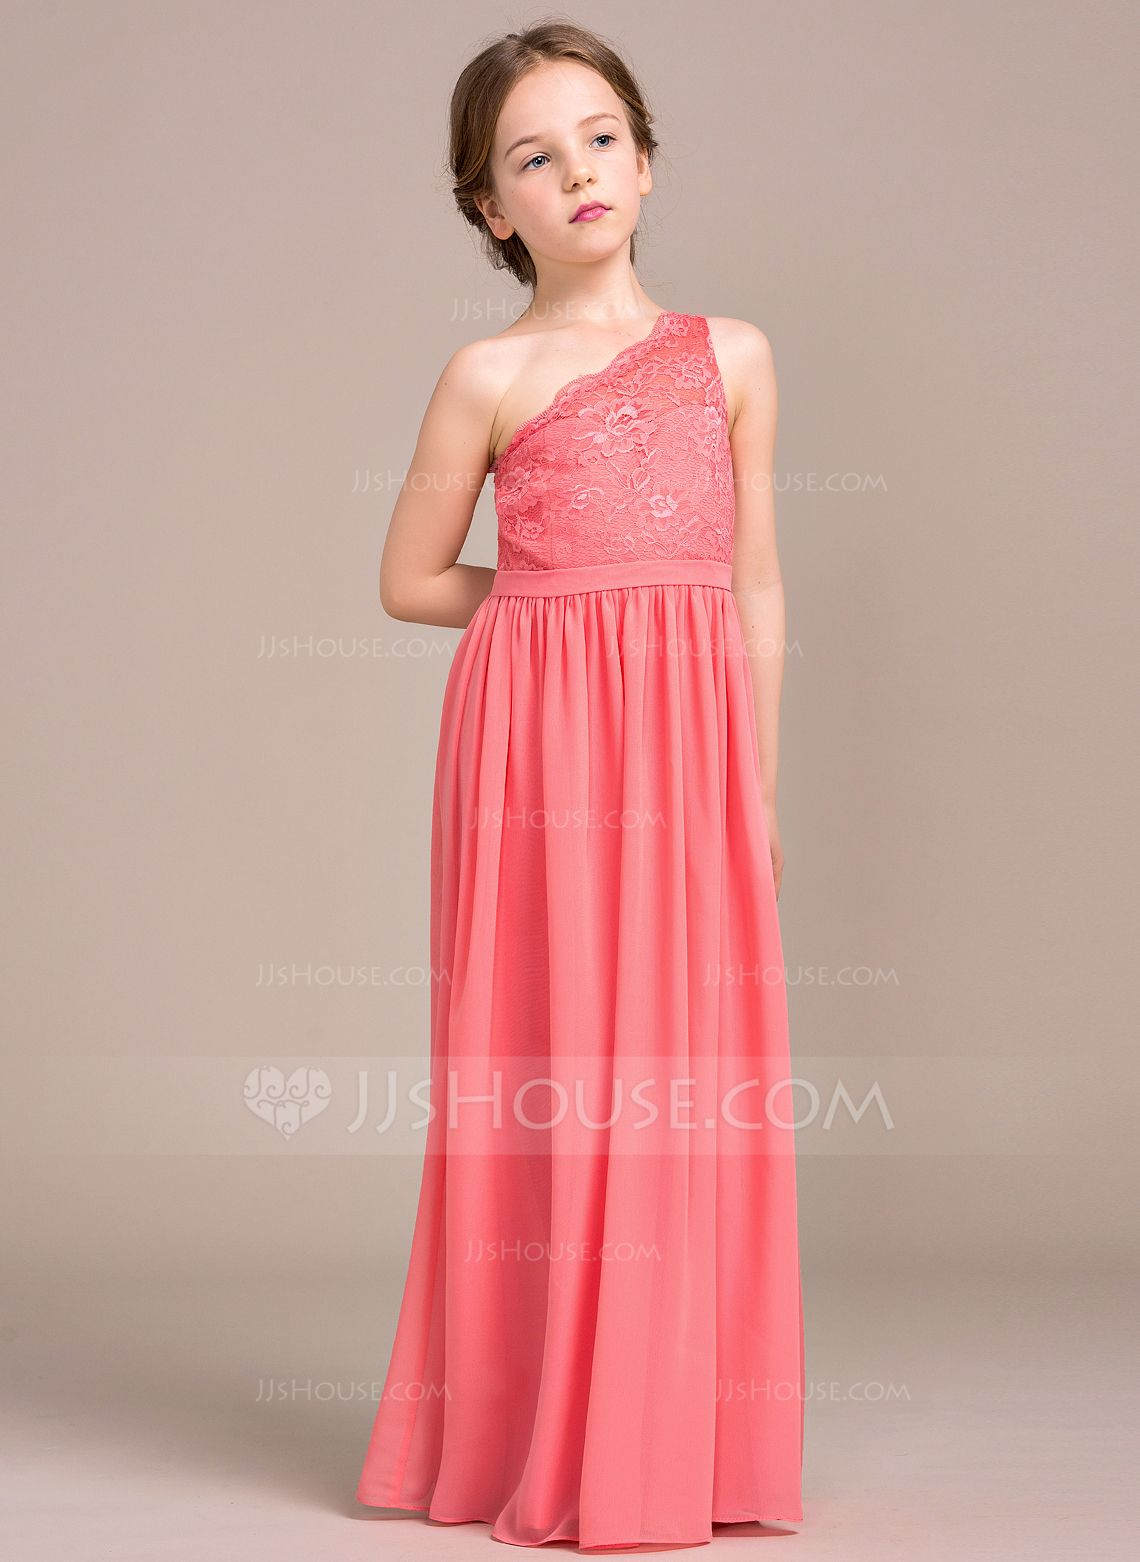 A lineprincess one shoulder floor length zipper up regular straps a lineprincess one shoulder floor length zipper up regular straps sleeveless junior bridesmaid dresseswatermelonzipperssewing ombrellifo Choice Image